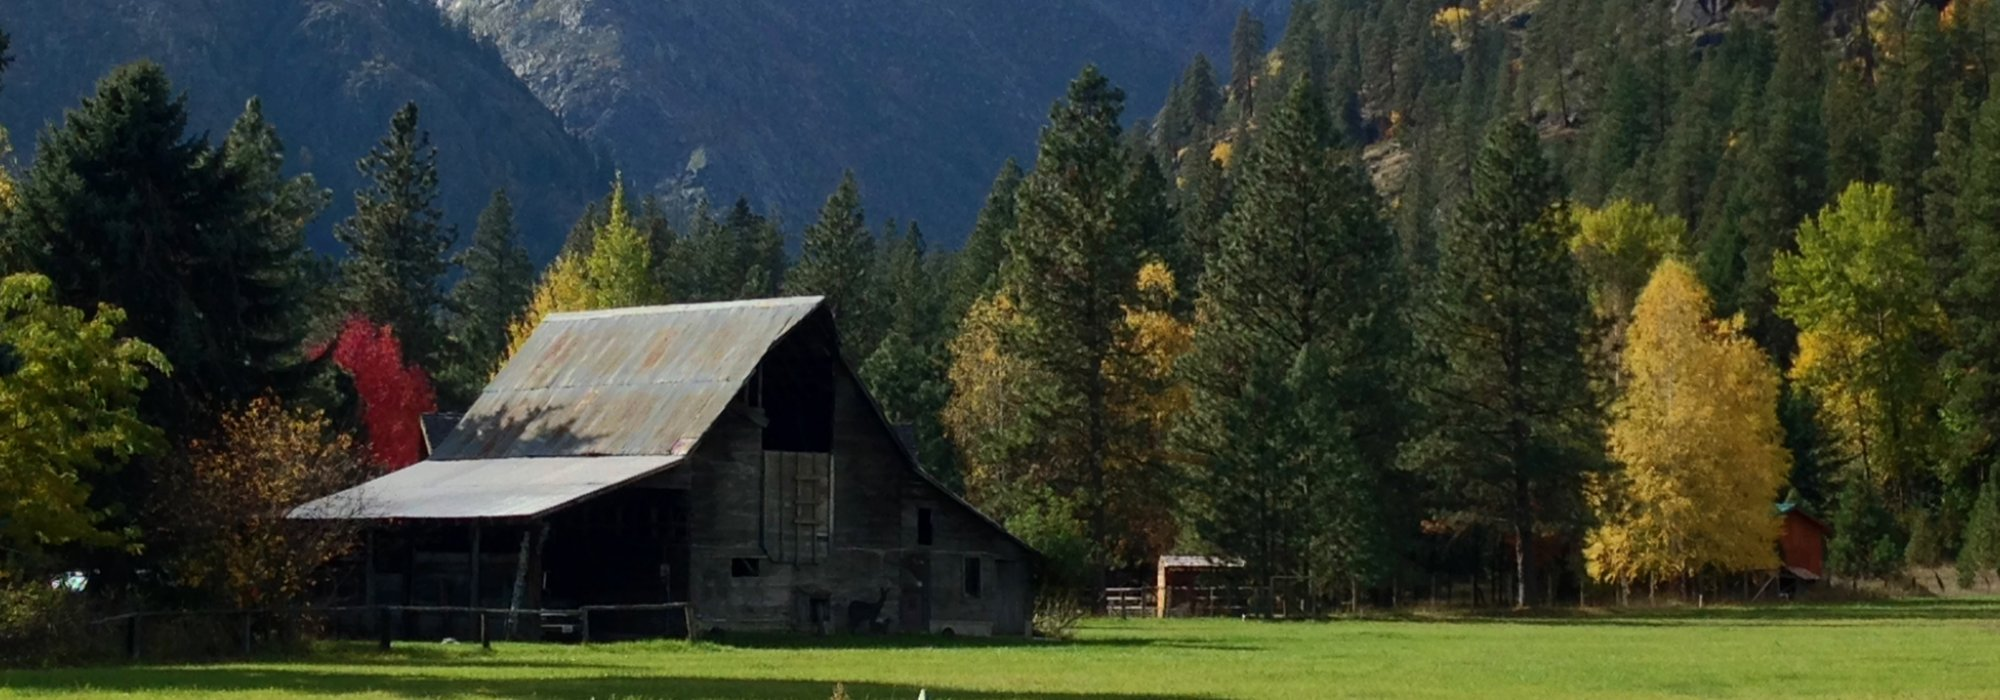 A rural scene in Leavenworth, Washington.